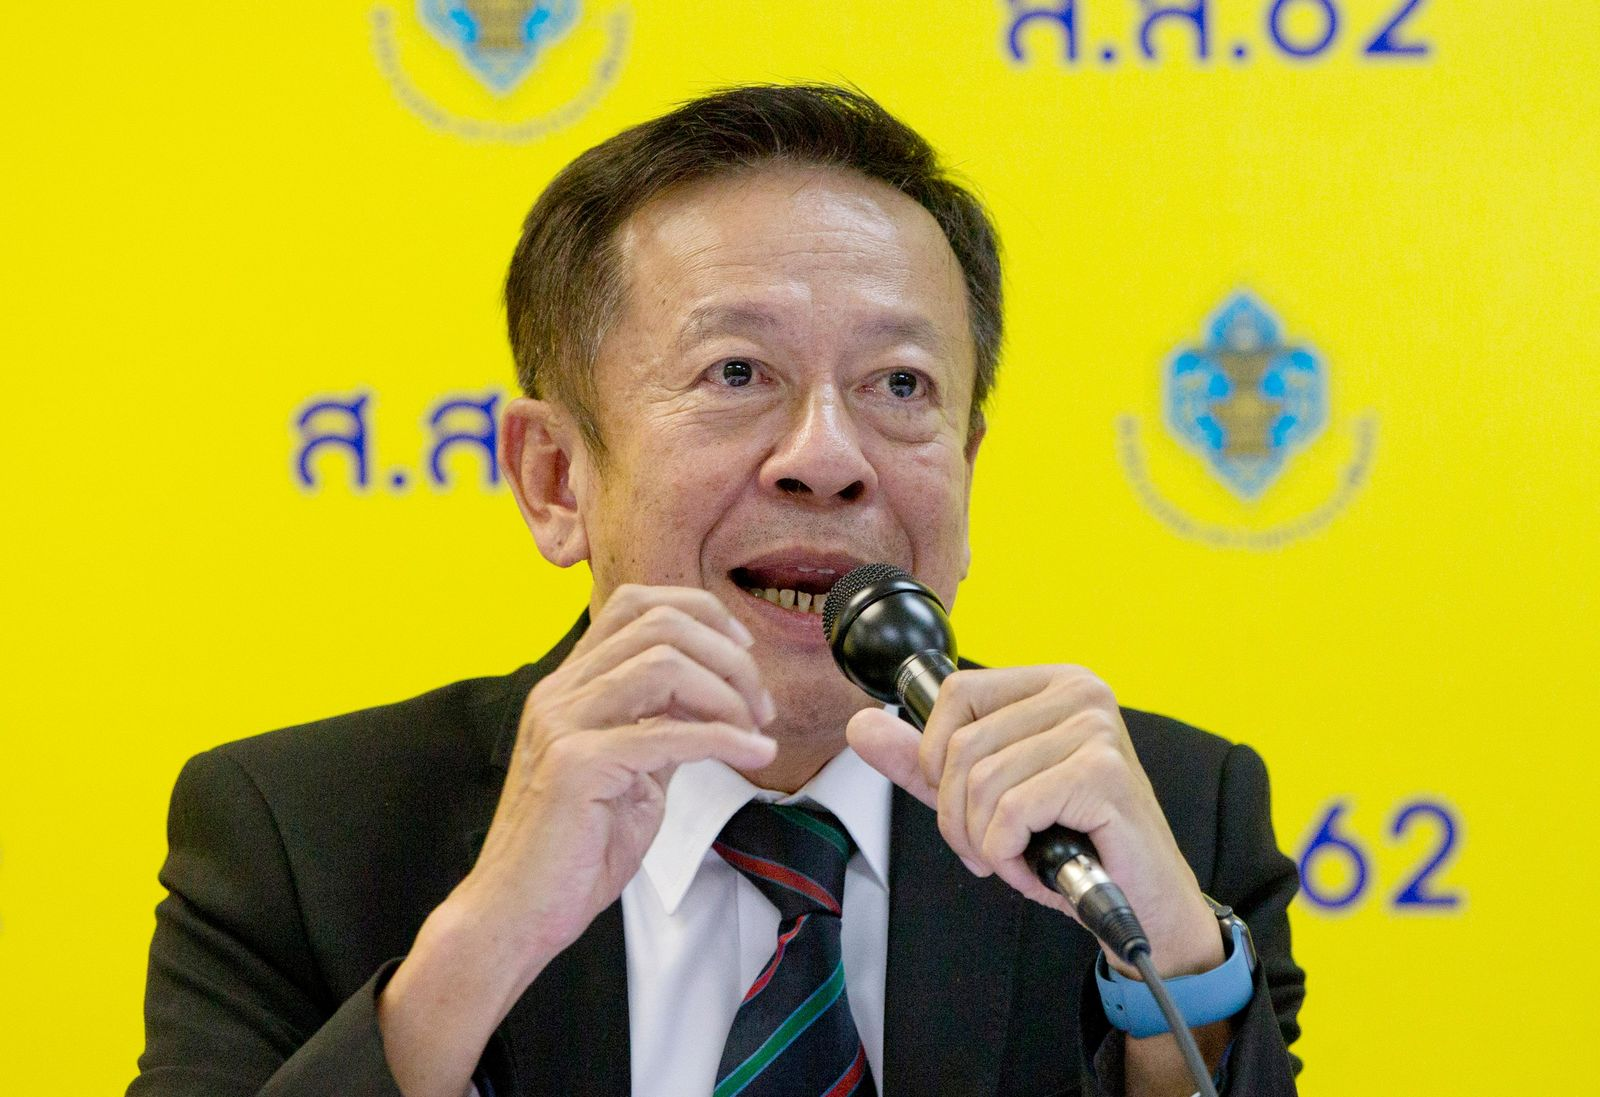 Charoongwit Poomma, Secretary-General of Election Commission speaks during a press conference in Bangkok, Thailand, Monday, March 25, 2019. Election Commission said it will announce the results of 350 constituency seats later Monday but full vote counts, which are needed to determine the allocation of 150 other seats in the House of Representatives, won't be available until Friday. (AP Photo/Gemunu Amarasinghe)